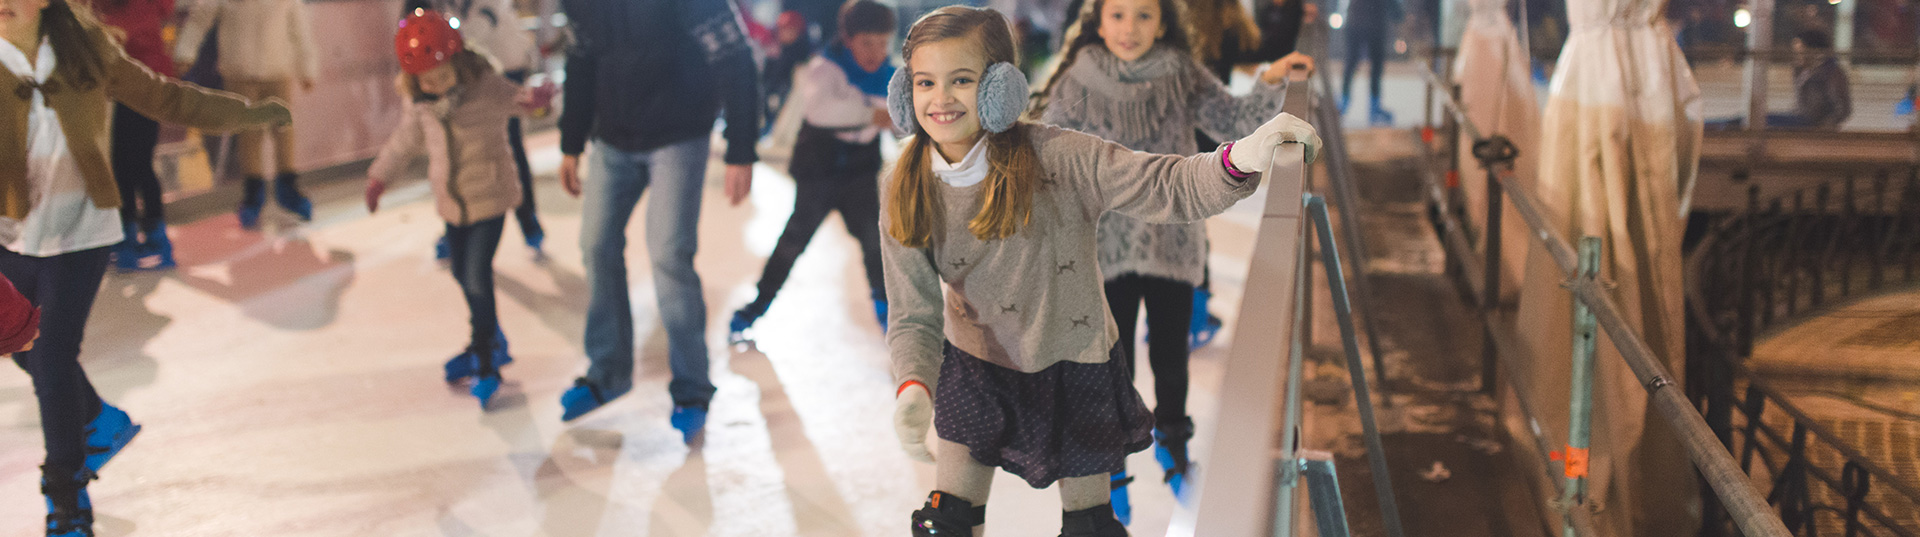 patinoire synthétique occasion Xtraice